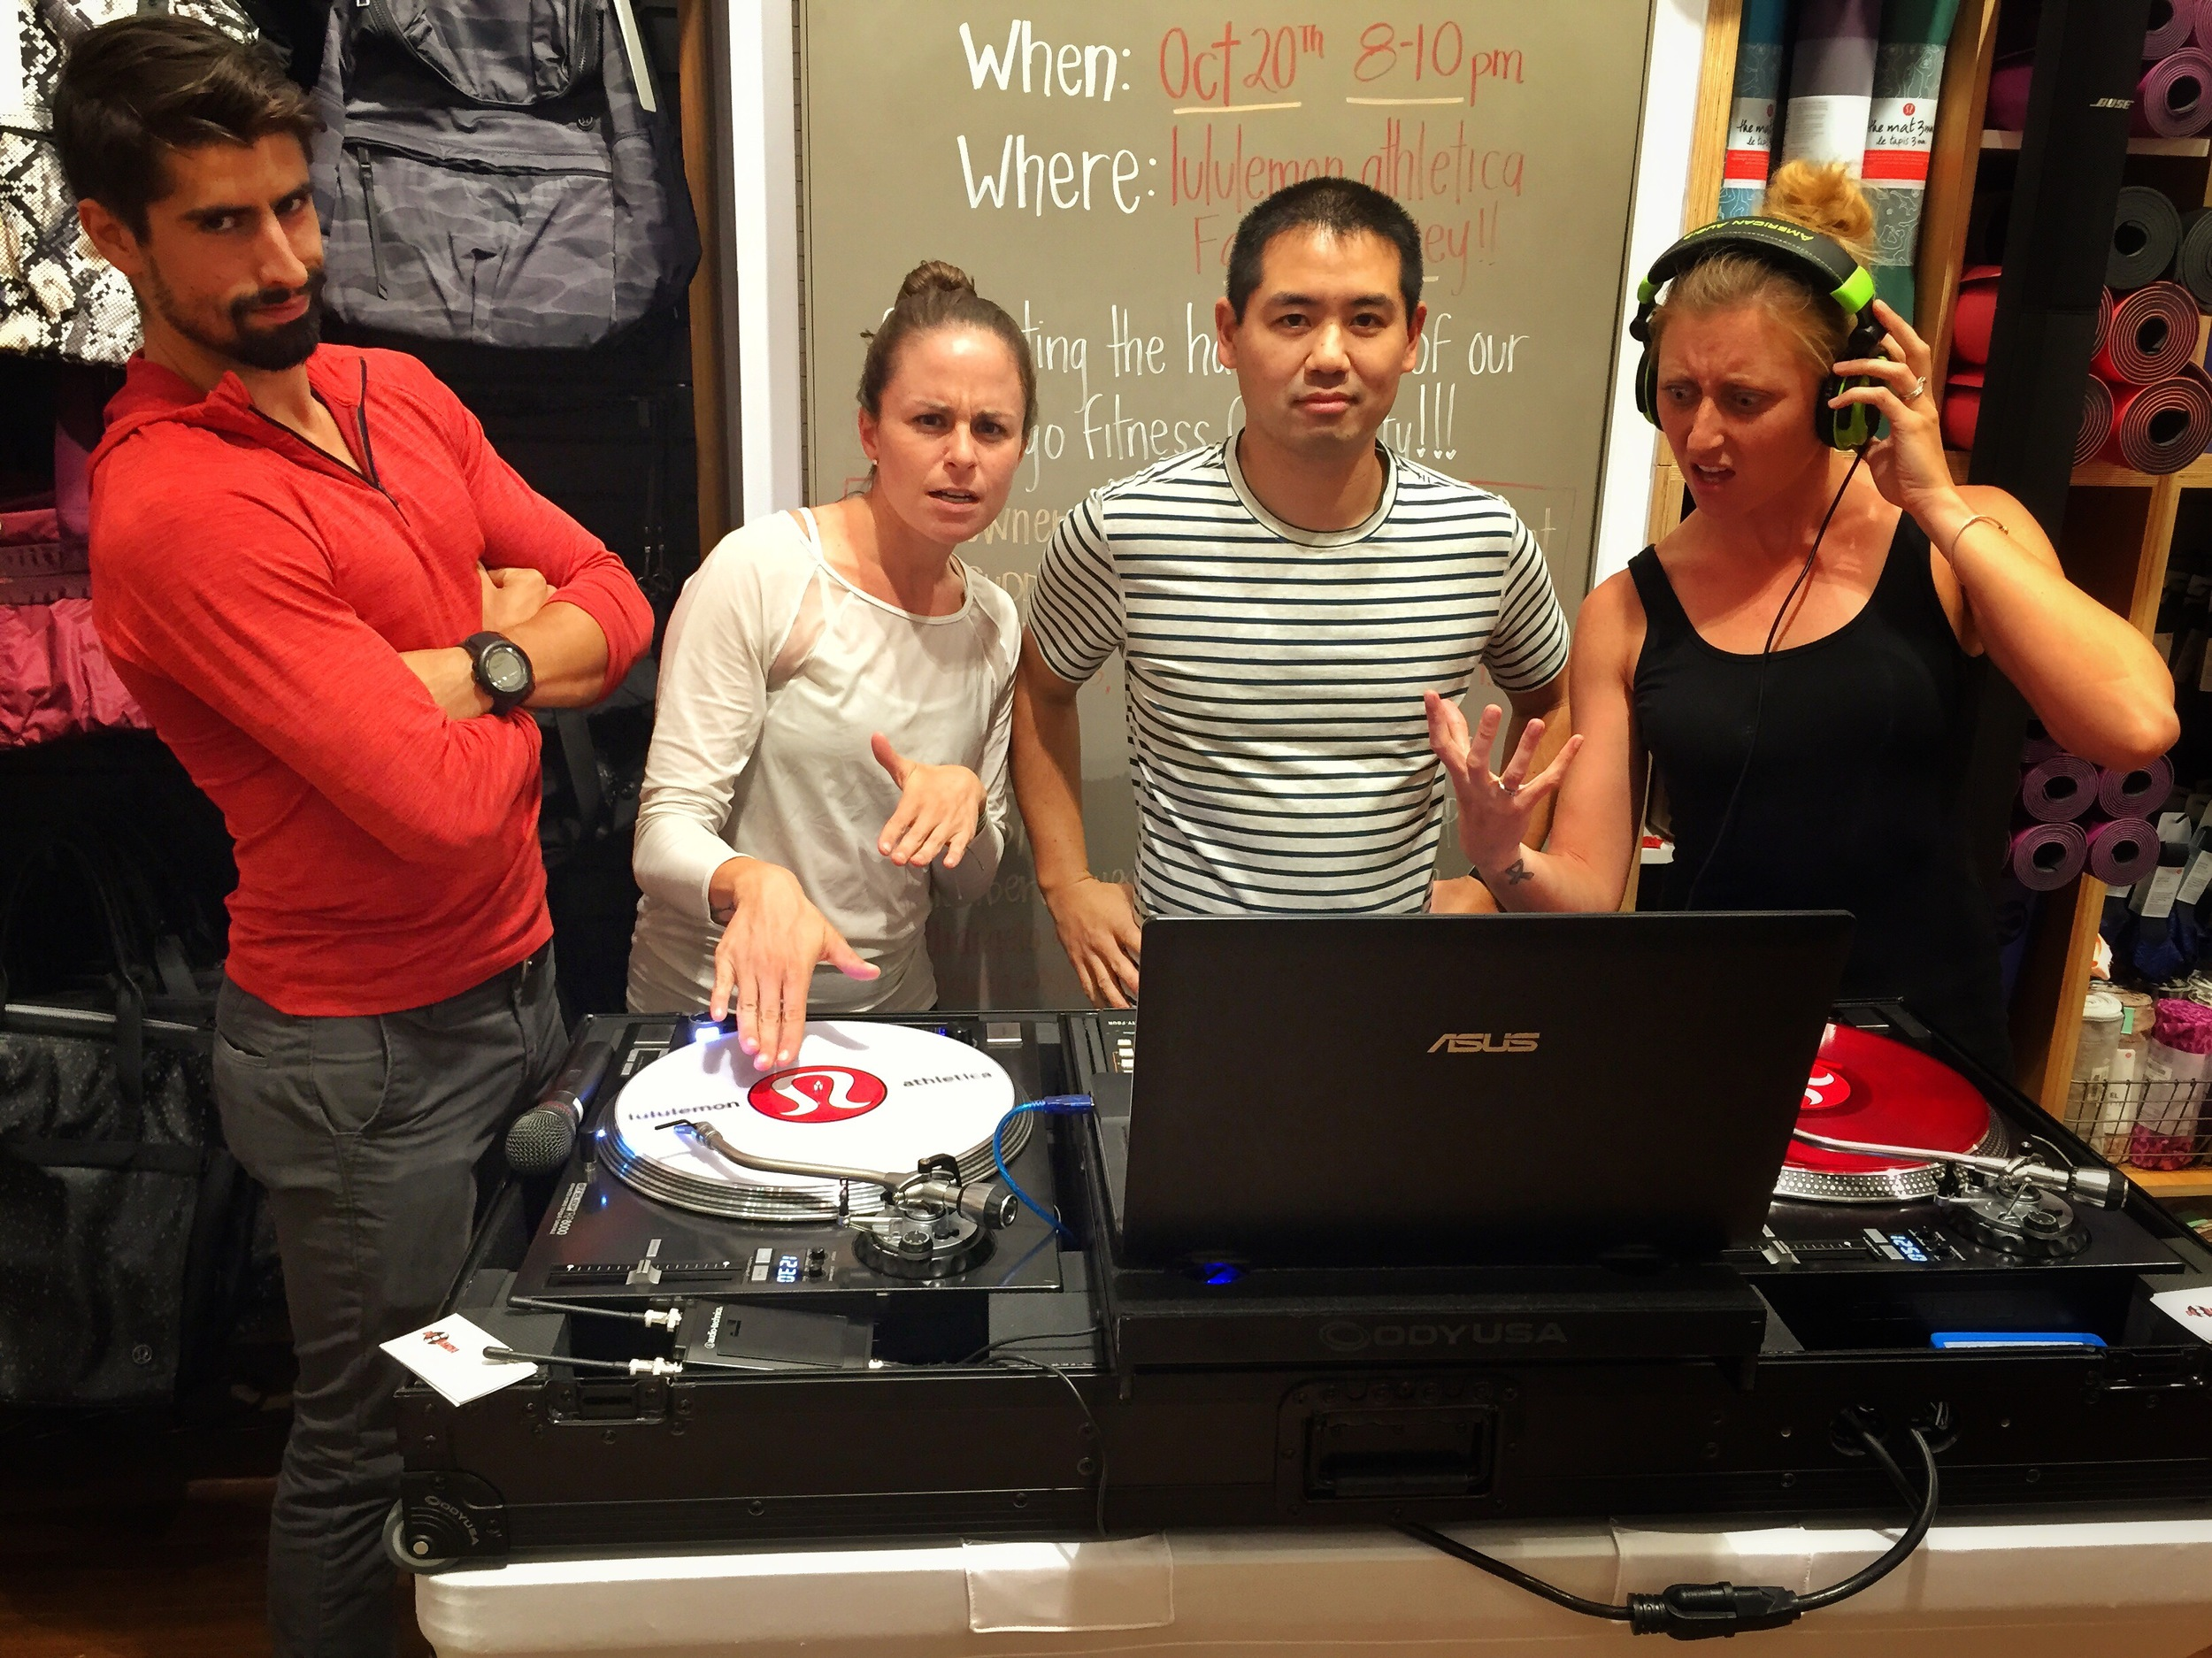 Great friends from November Project - San Diego attended Industry Night at Lululemon Fashion Valley. From left: Angelo Neroni, Lauren Padula, DJ Justin Kanoya and Ashleigh Voychick.